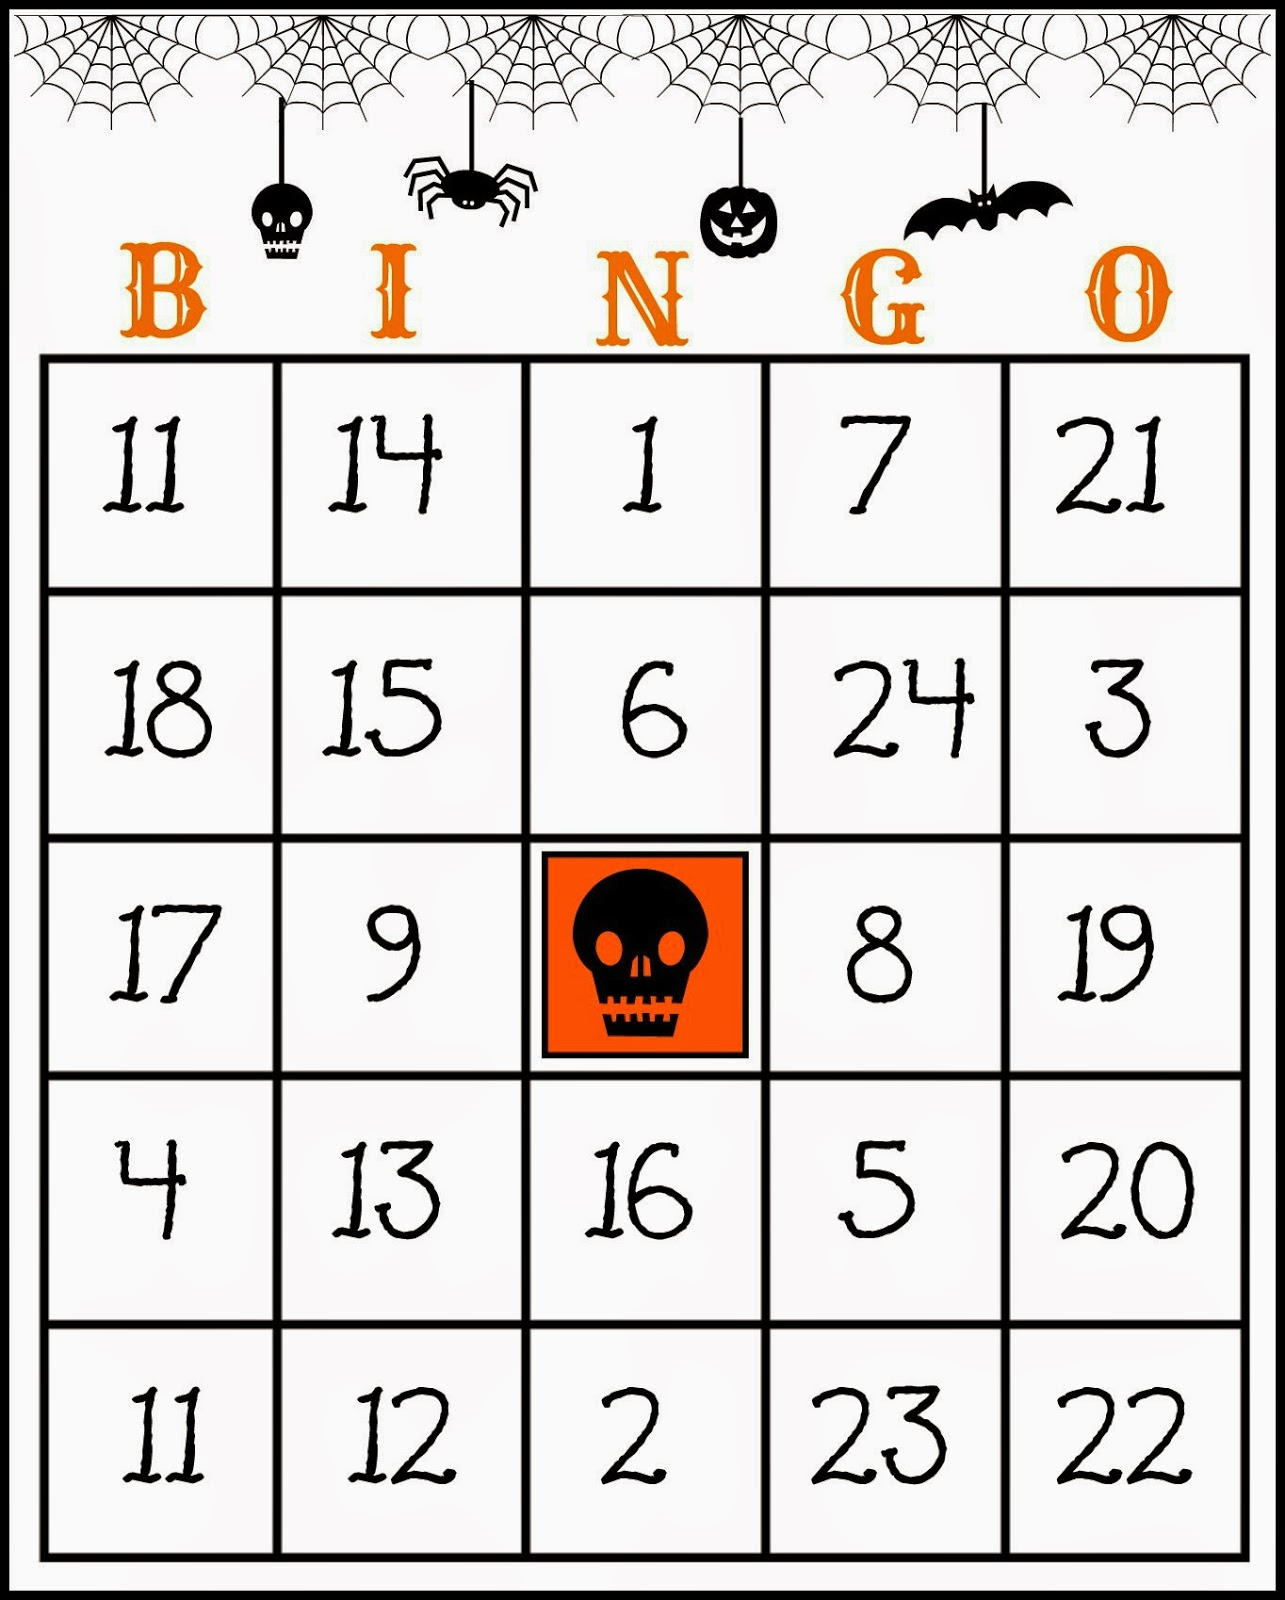 graphic regarding Printable Halloween Bingo Card titled Cunning inside of Crosby: Absolutely free Printable Halloween Bingo Video game